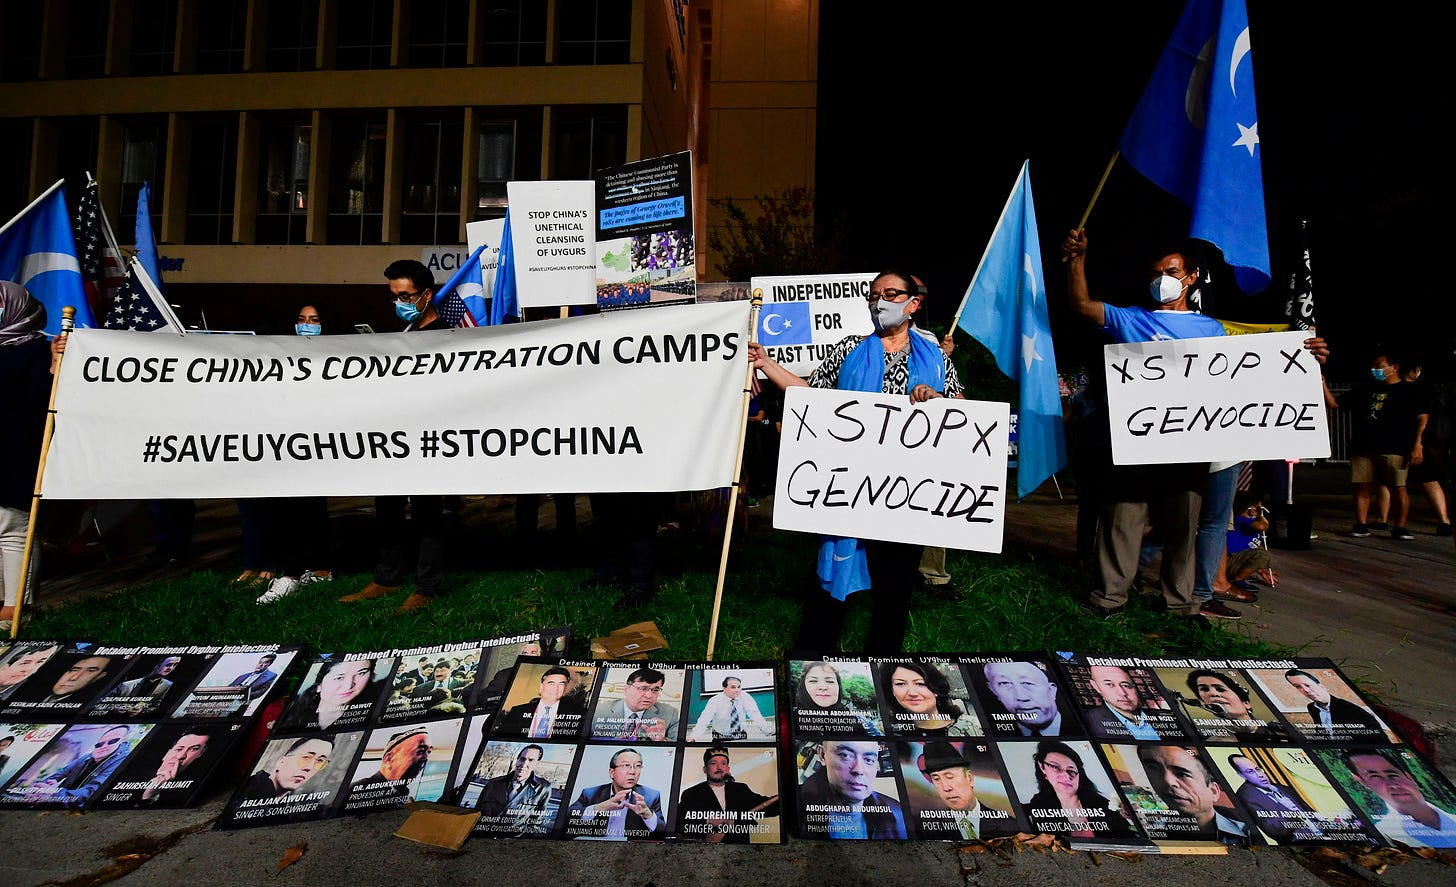 """Protesters stand behind a display of photographs of prominent Uighur intellectuals detained by China as they gather across from the Chinese Consulate in Los Angeles on October 1, 2020 during a global day of action called by """"Resist China"""" (#ResistChina), a global campaign against the regime of the Chinese Communist Party. (Photo by Frederic J. BROWN / AFP) (Photo by FREDERIC J. BROWN/AFP via Getty Images)"""